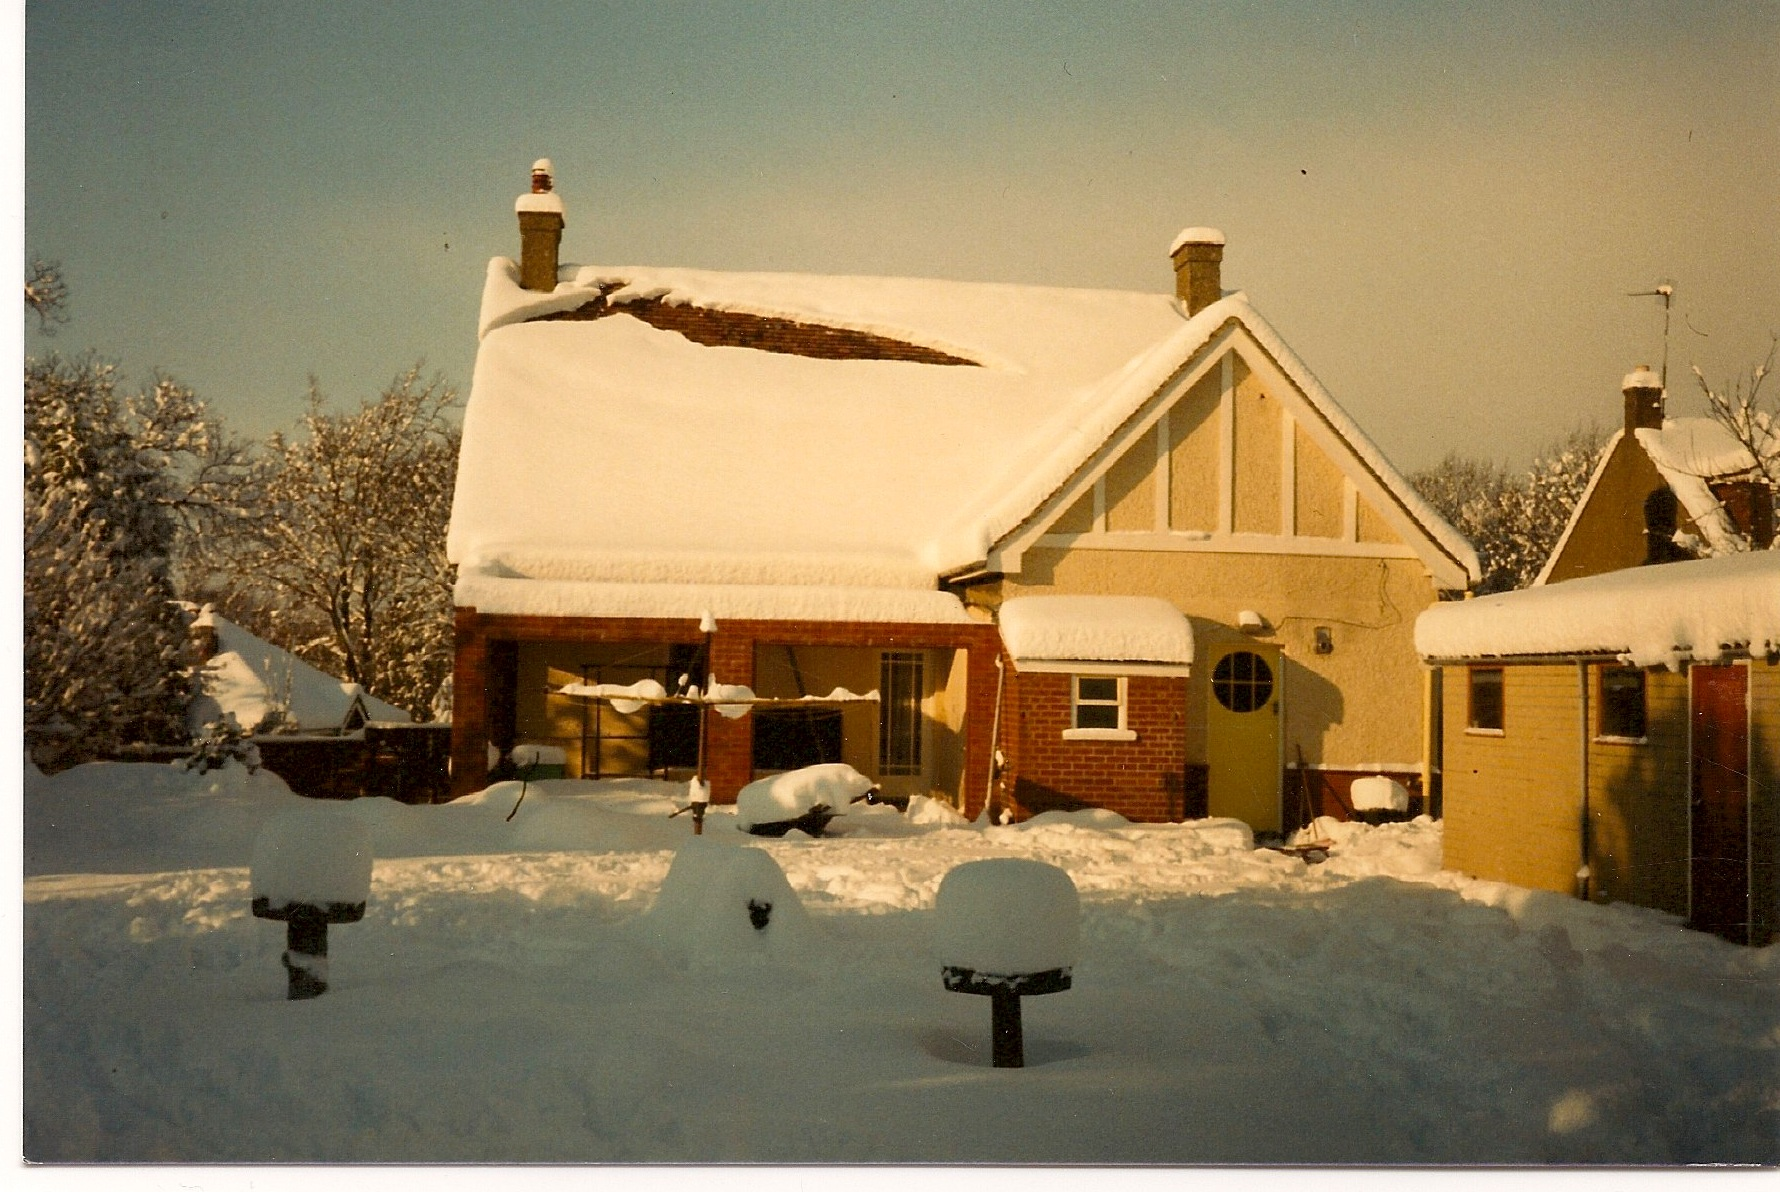 Snow at 27 Wigmore Road in 1987